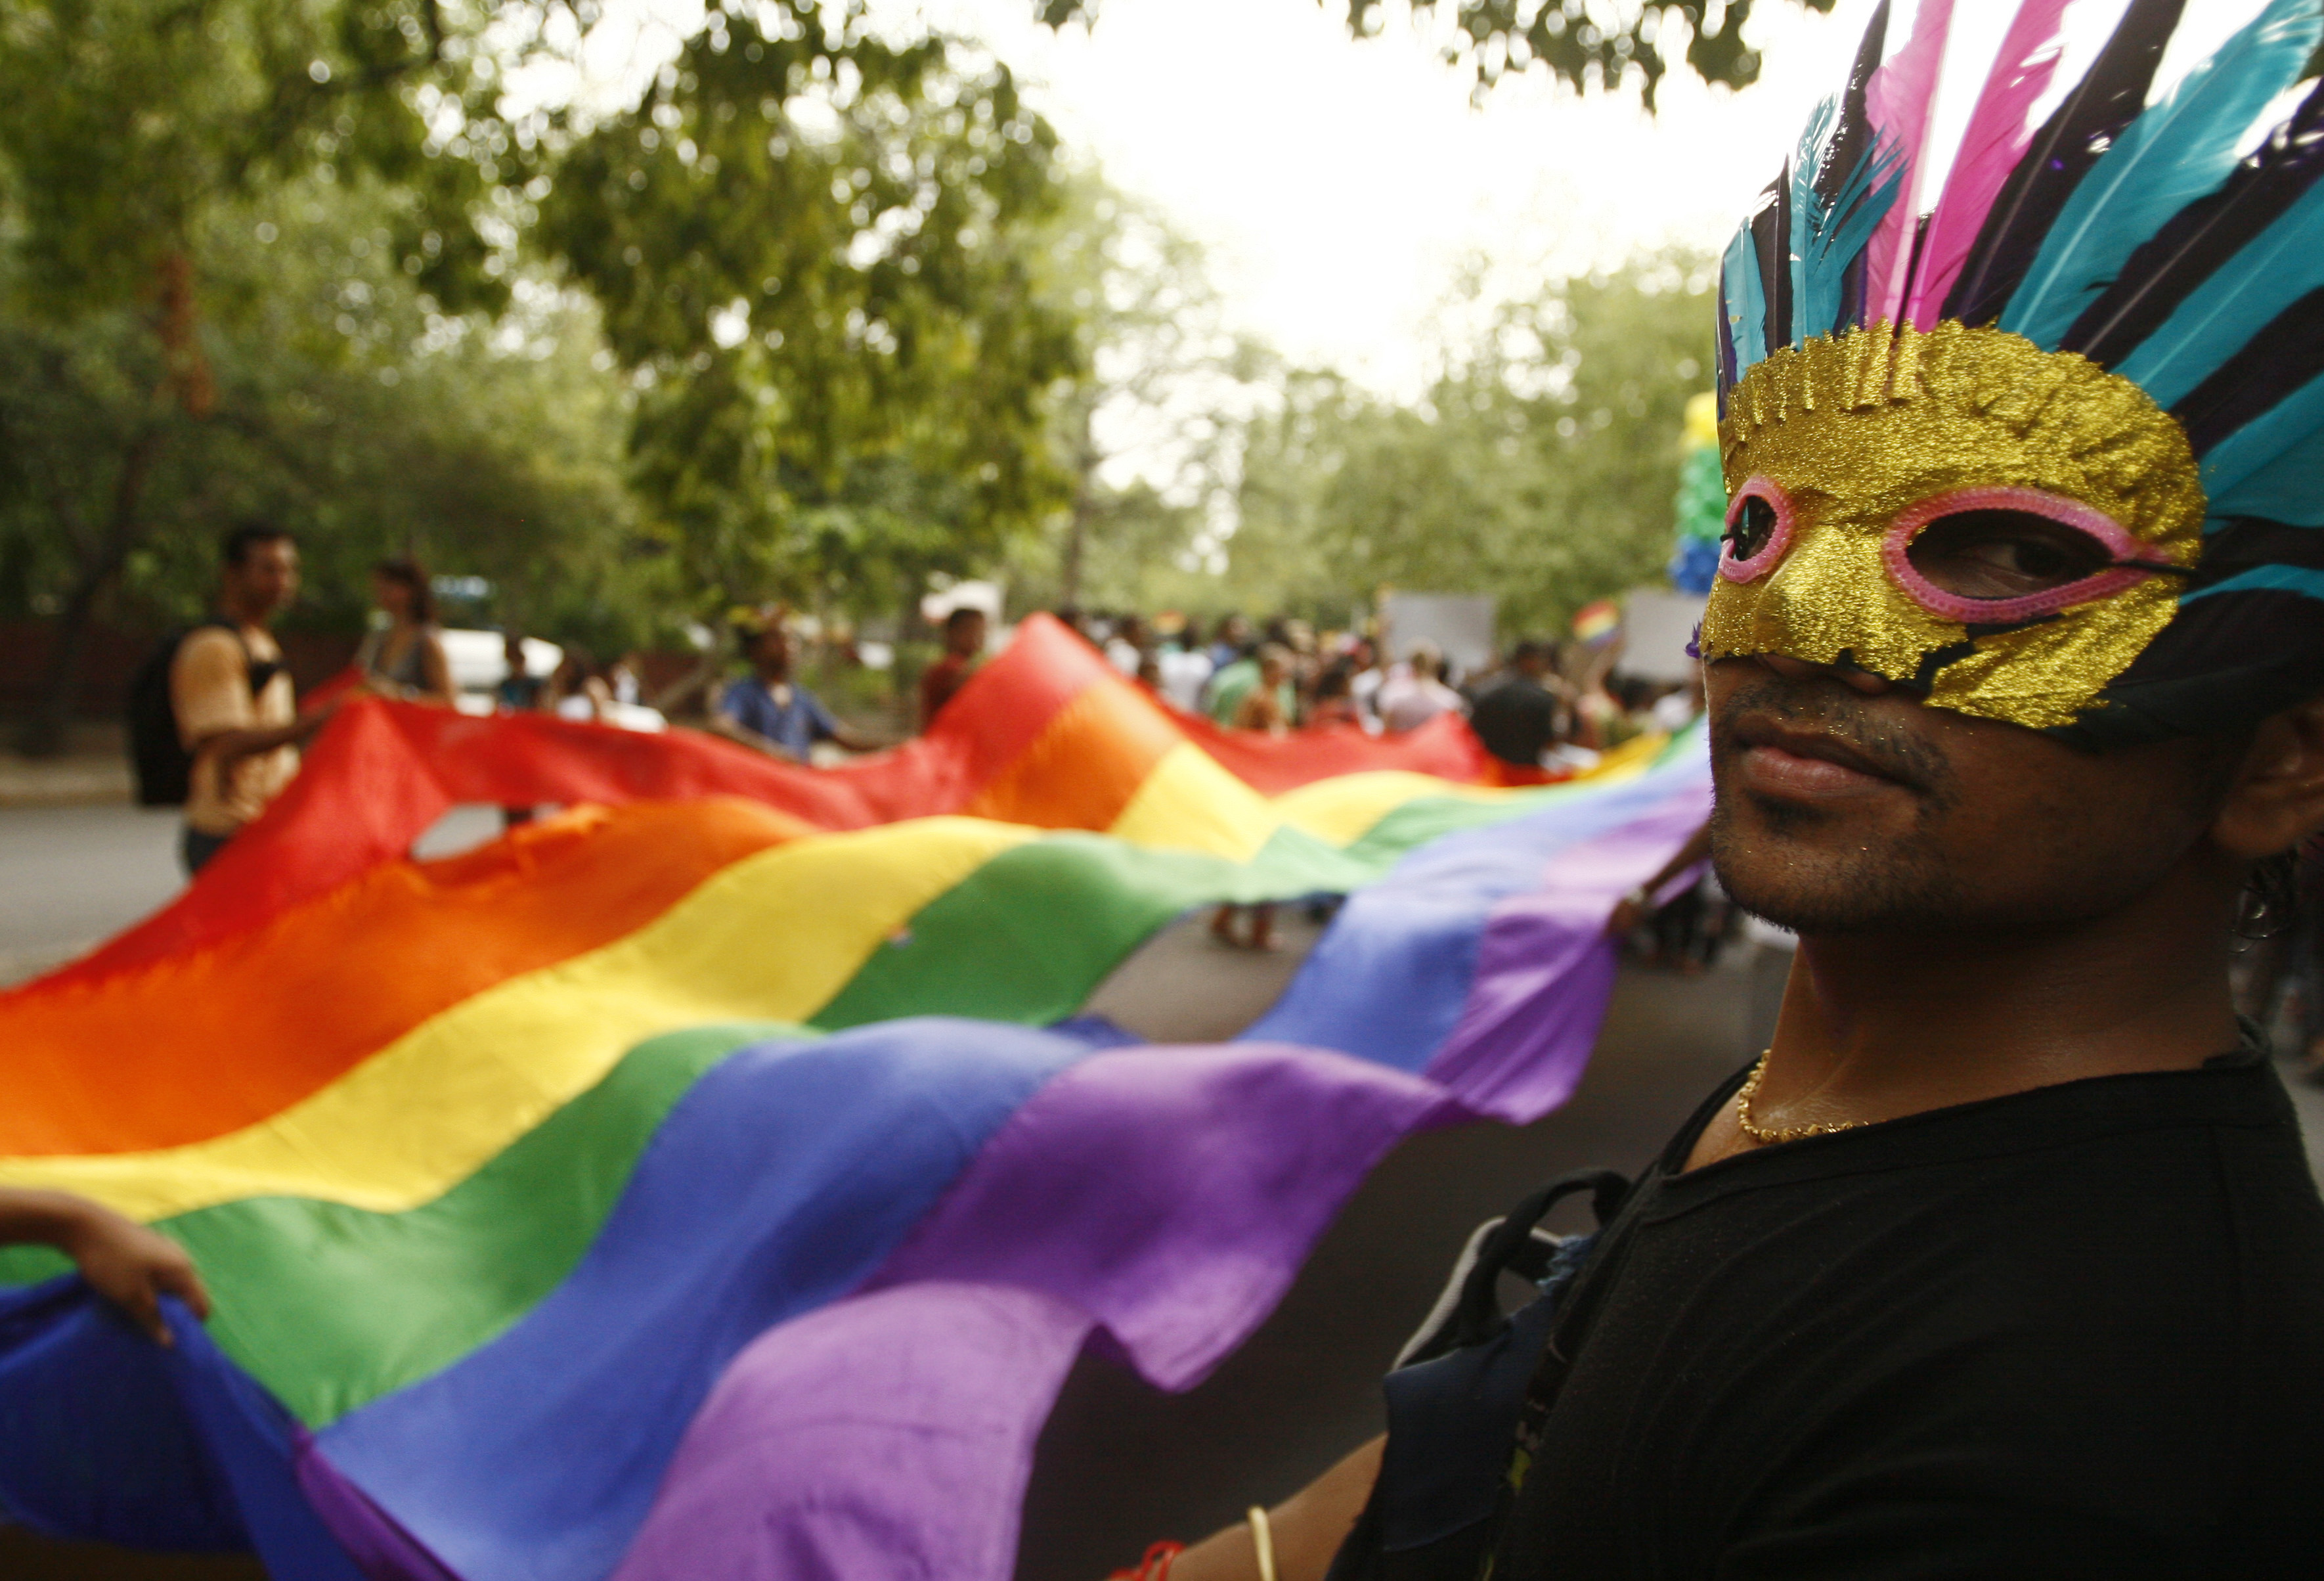 Participants take part in a gay pride march in New Delhi June 28, 2009. About a thousand gays, lesbians, transsexuals and supporters participated in the parade on Sunday. REUTERS/Buddhika Weerasinghe (INDIA SOCIETY) - RTR254OT